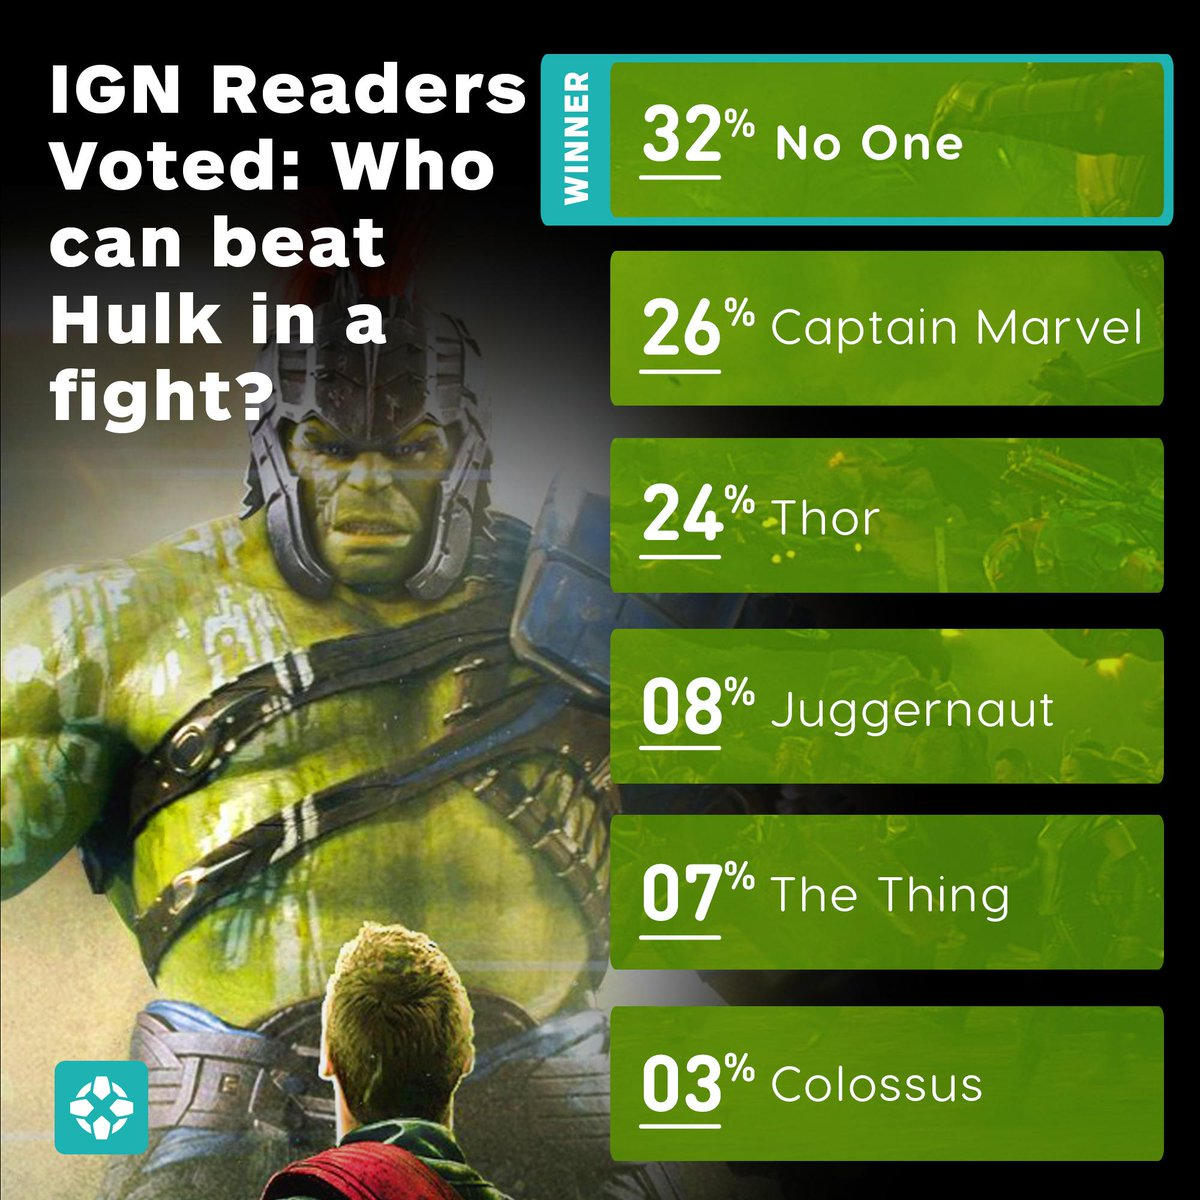 Hey @MarkRuffalo - we asked over 23,000 people who could beat Hulk in a fight… and NO ONE beats Hulk. 👊